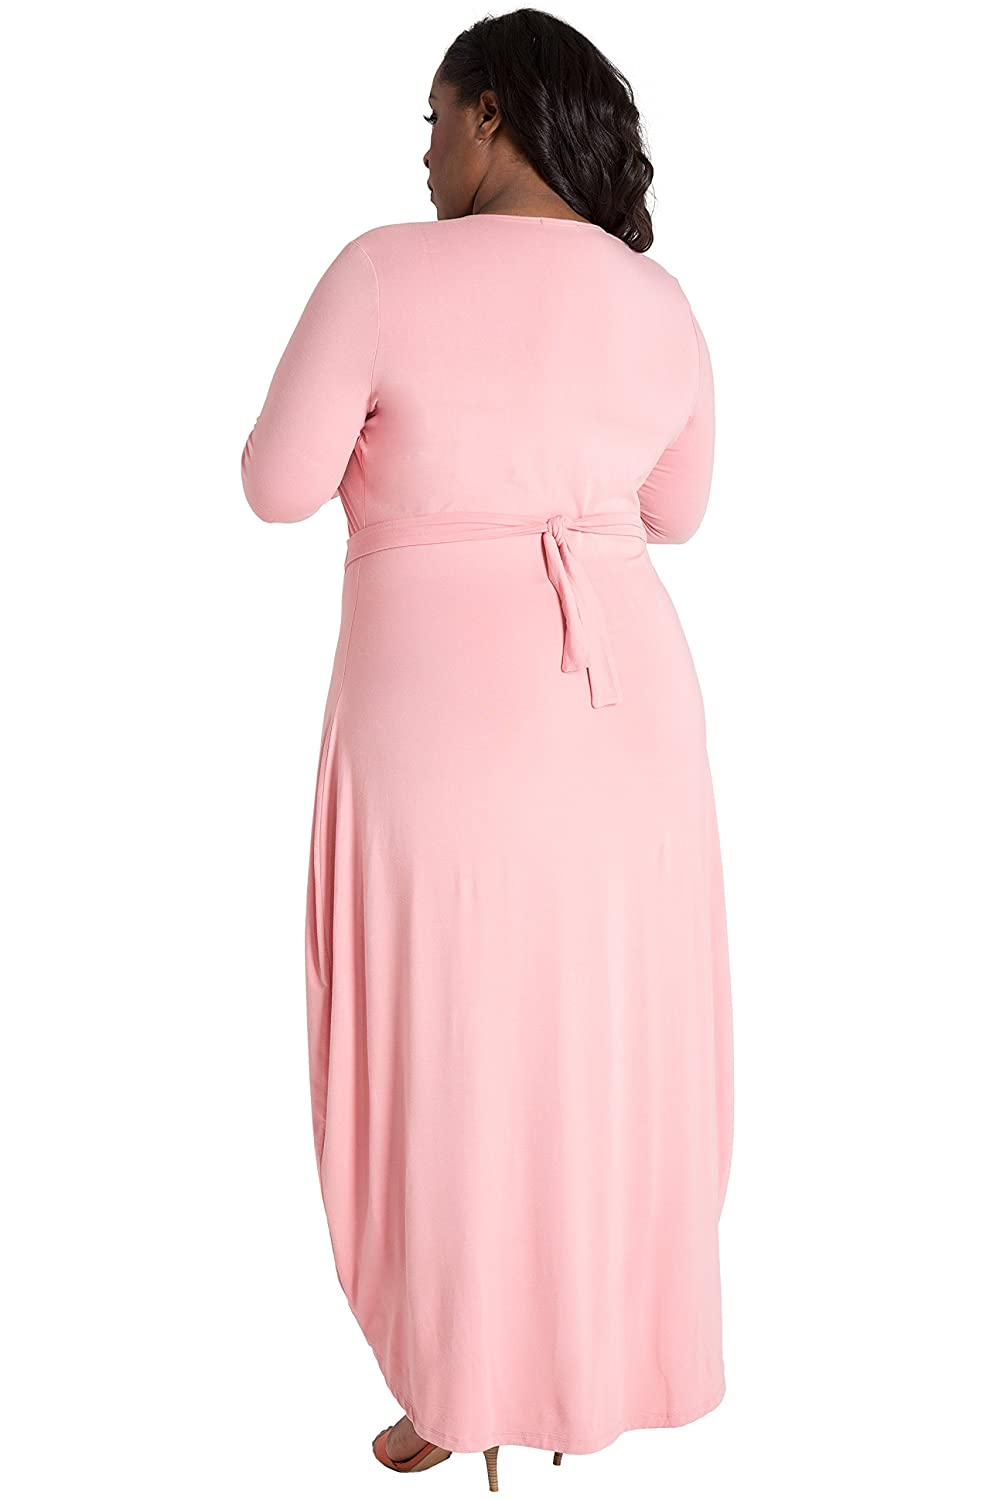 c850bf62e79 Poetic Justice Plus Size Curvy Women s Pink White Flare Sleeve Jersey Maxi  Dress at Amazon Women s Clothing store